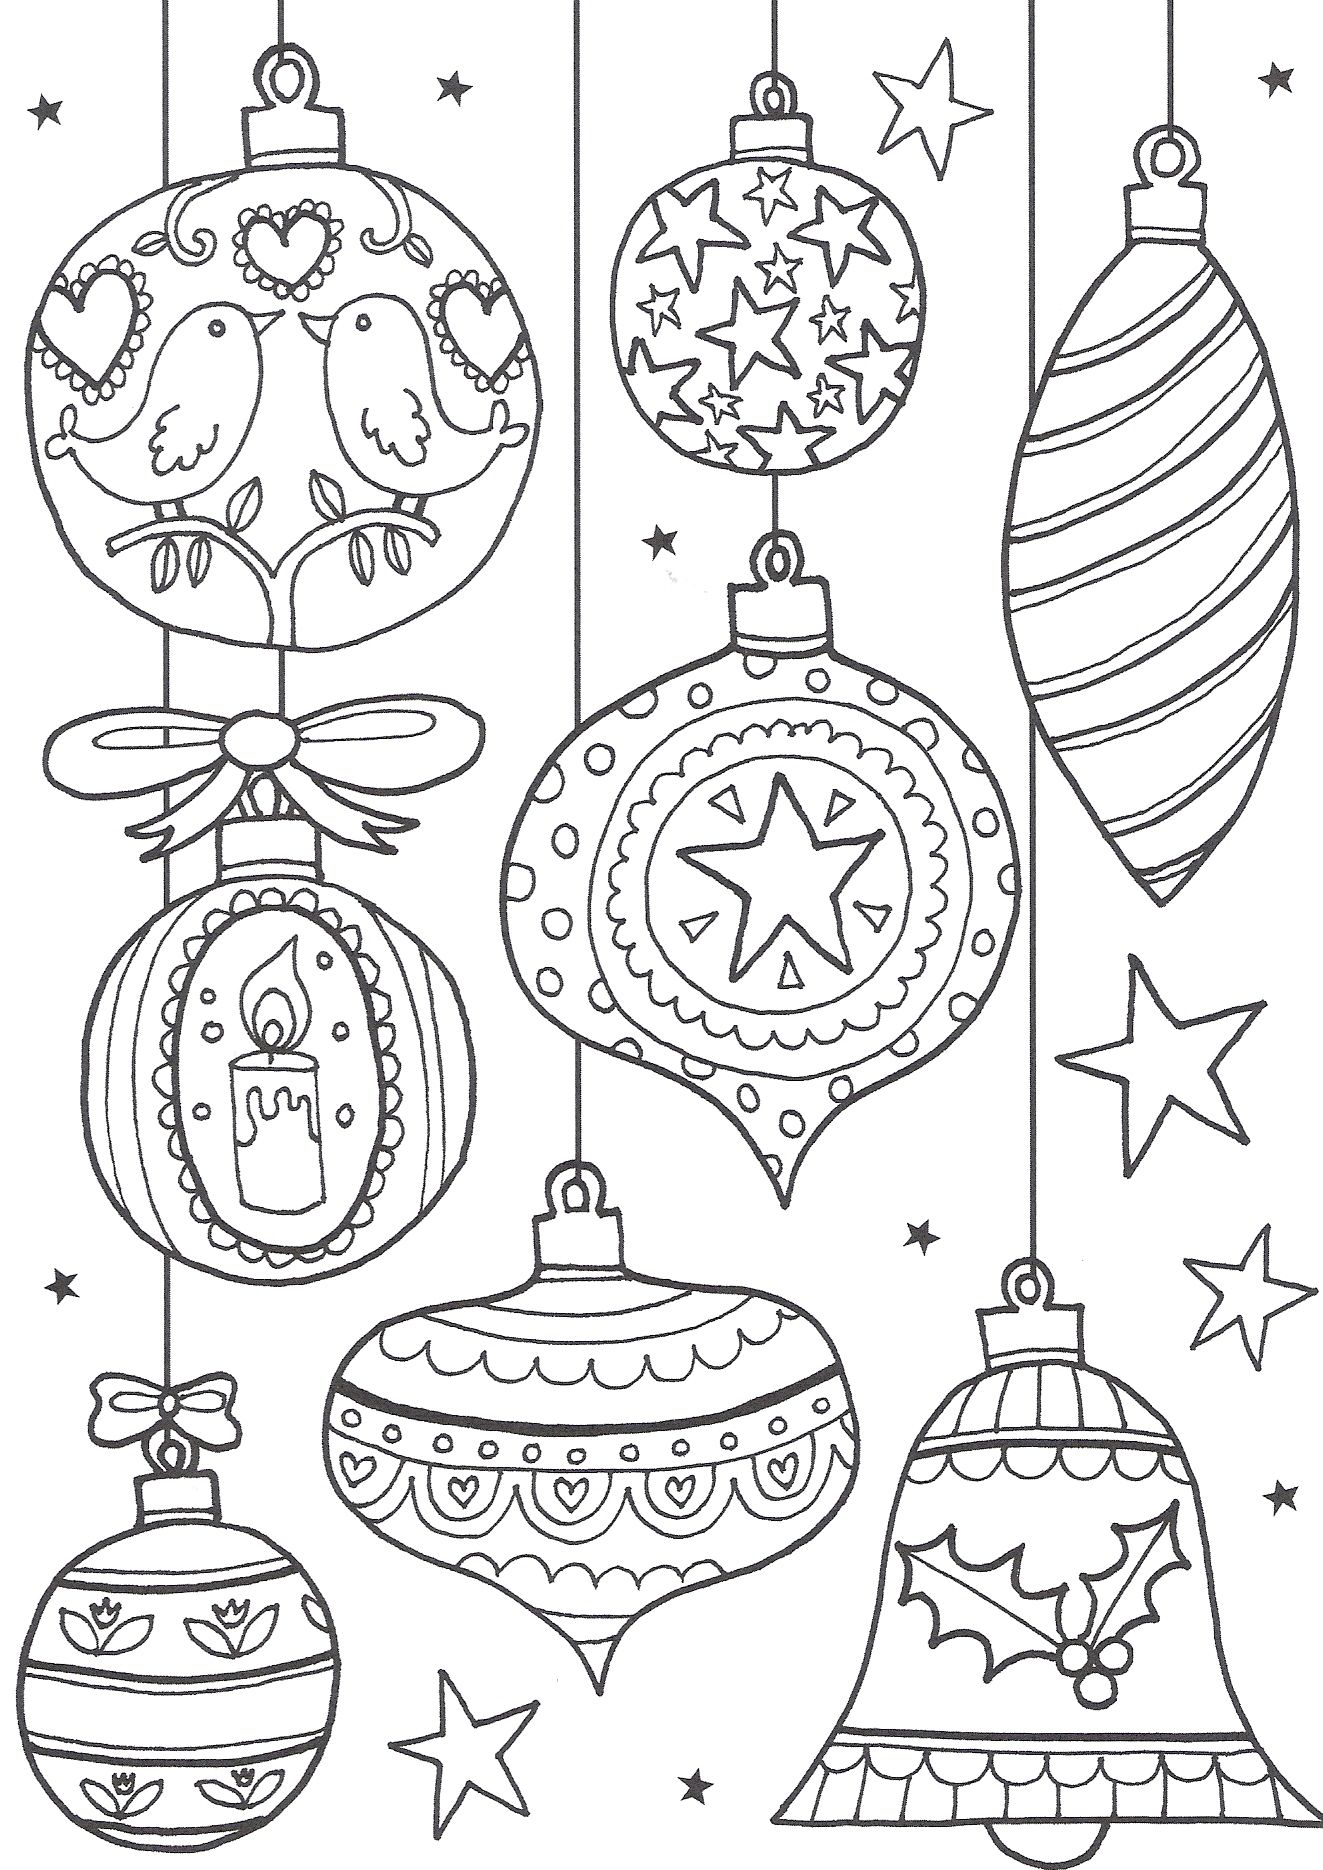 Christmas Coloring Activity Pages Printable With Free Colouring For Adults The Ultimate Roundup